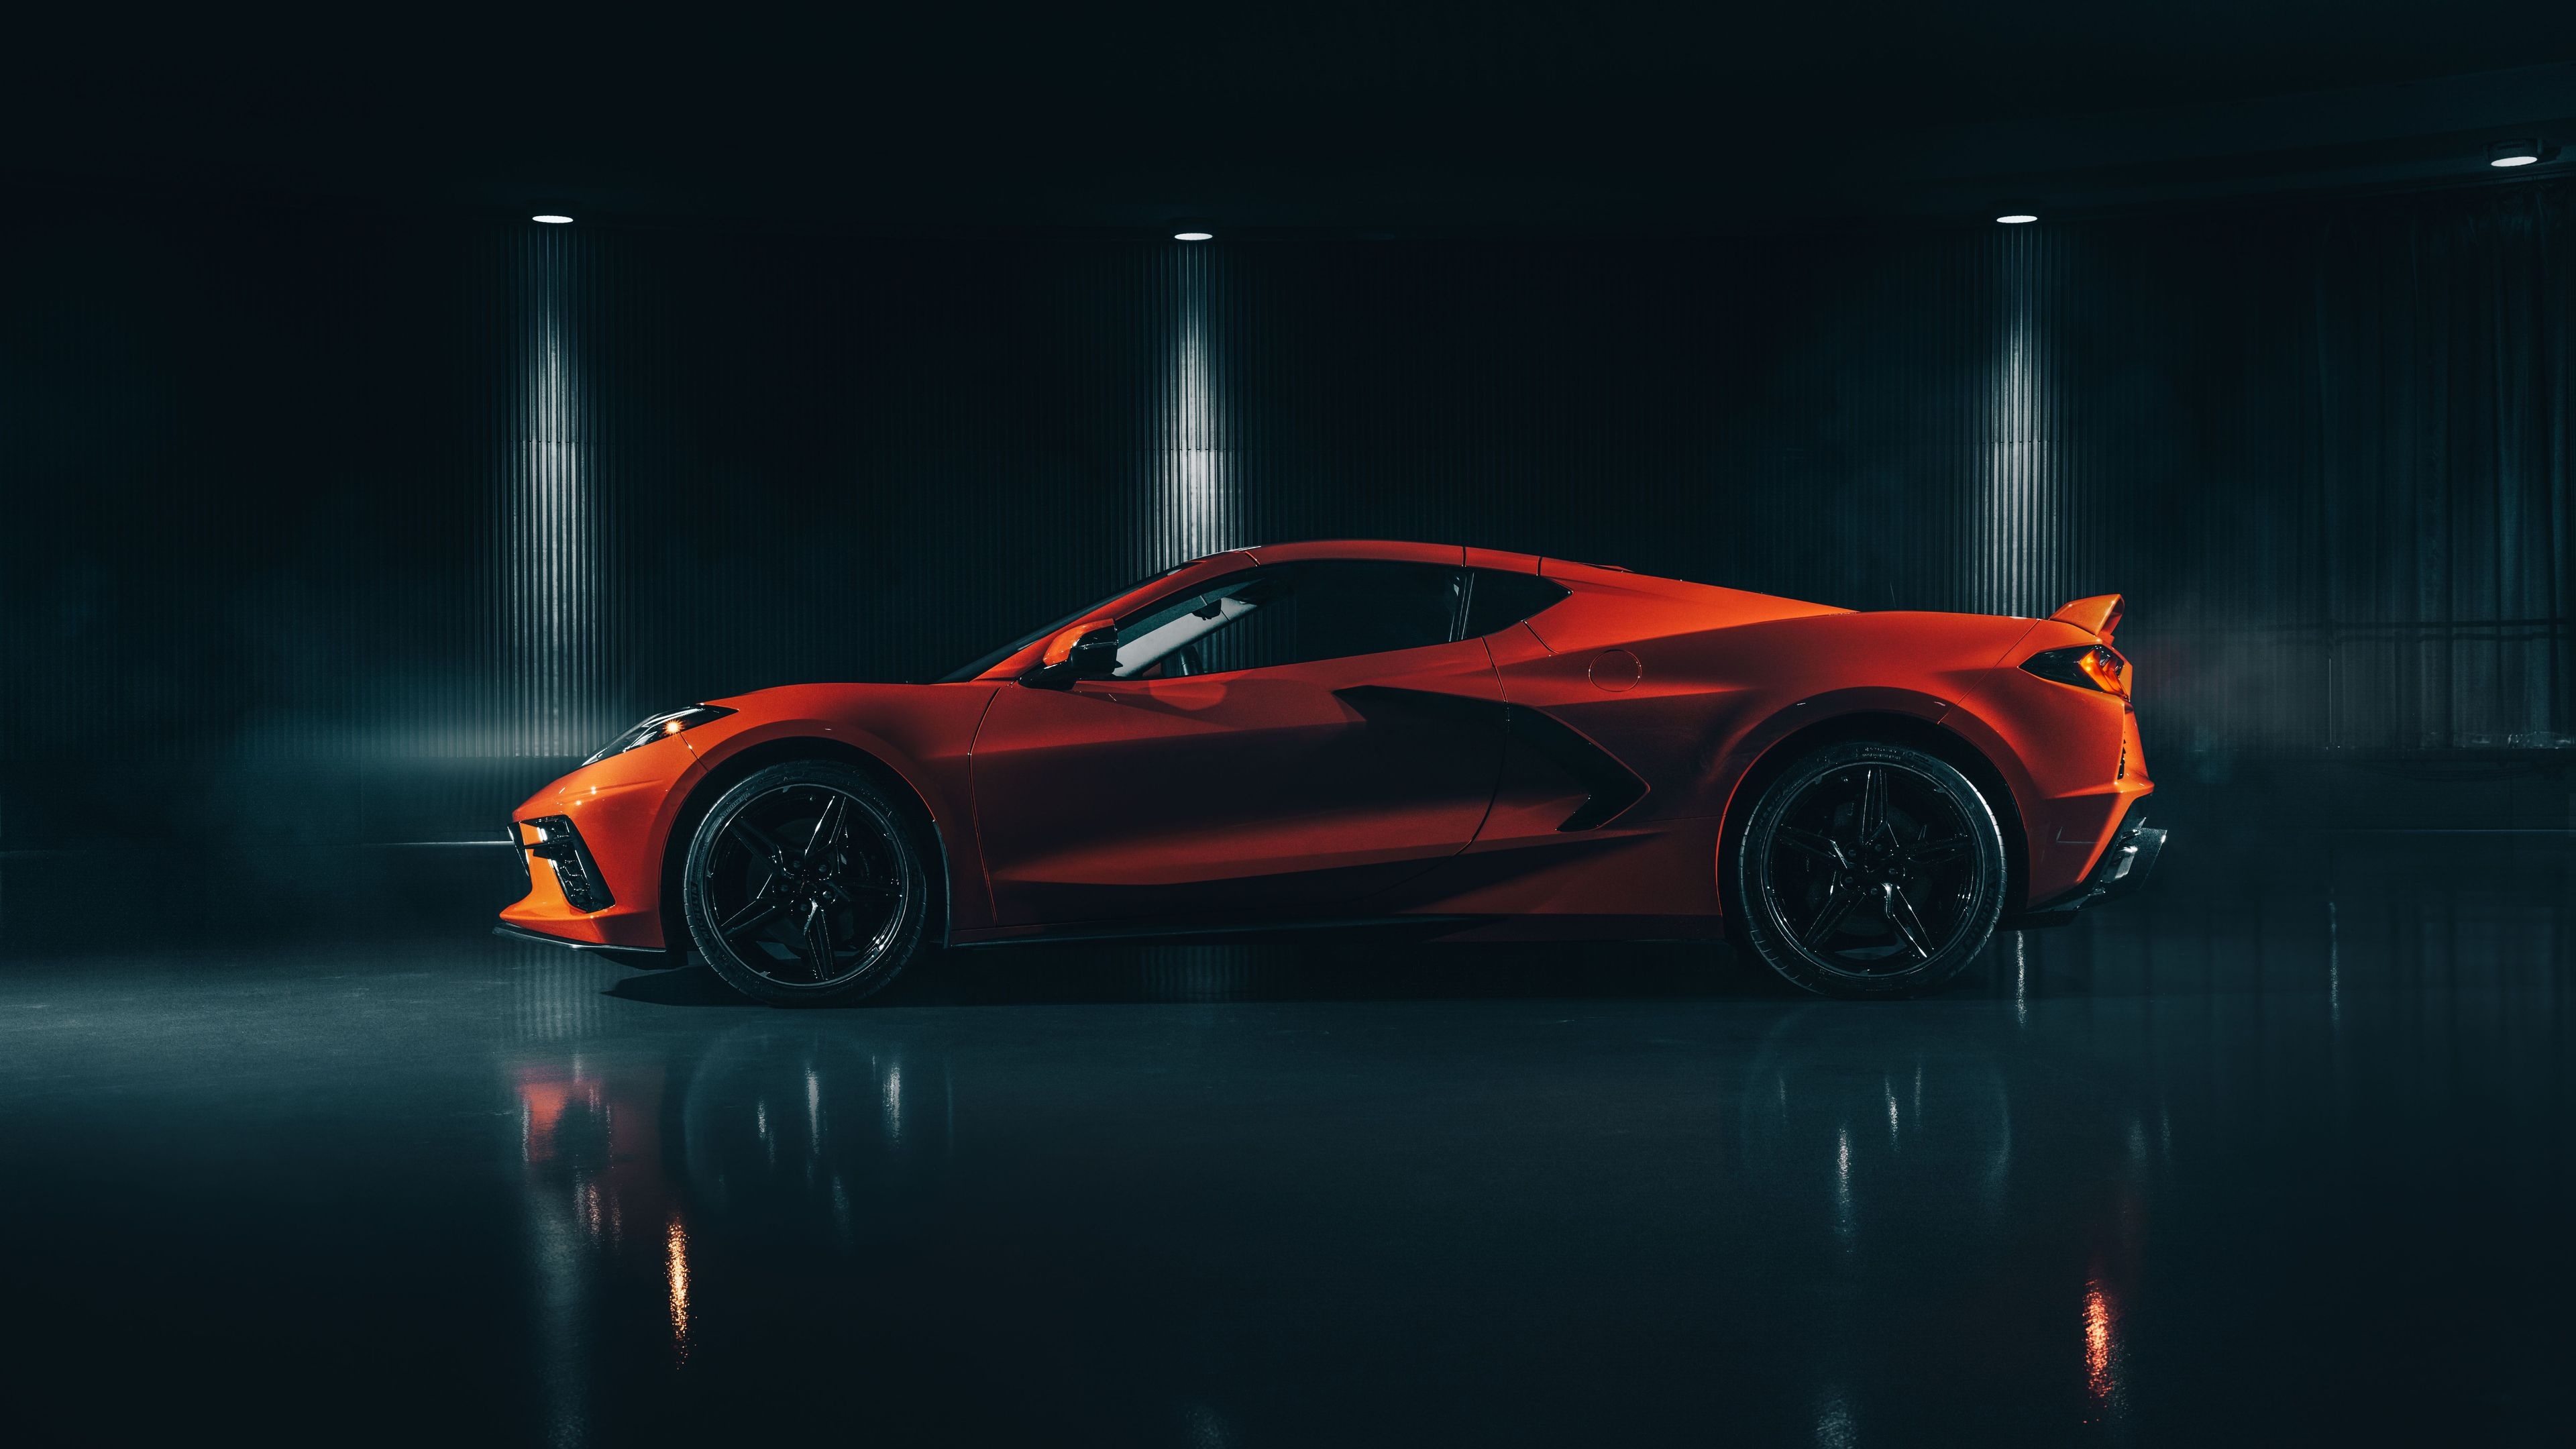 2020 chevrolet corvette stingray c8 1565054929 - 2020 Chevrolet Corvette Stingray C8 - hd-wallpapers, corvette wallpapers, chevrolet wallpapers, chevrolet corvette stingray c8 wallpapers, cars wallpapers, 8k wallpapers, 5k wallpapers, 4k-wallpapers, 2020 cars wallpapers